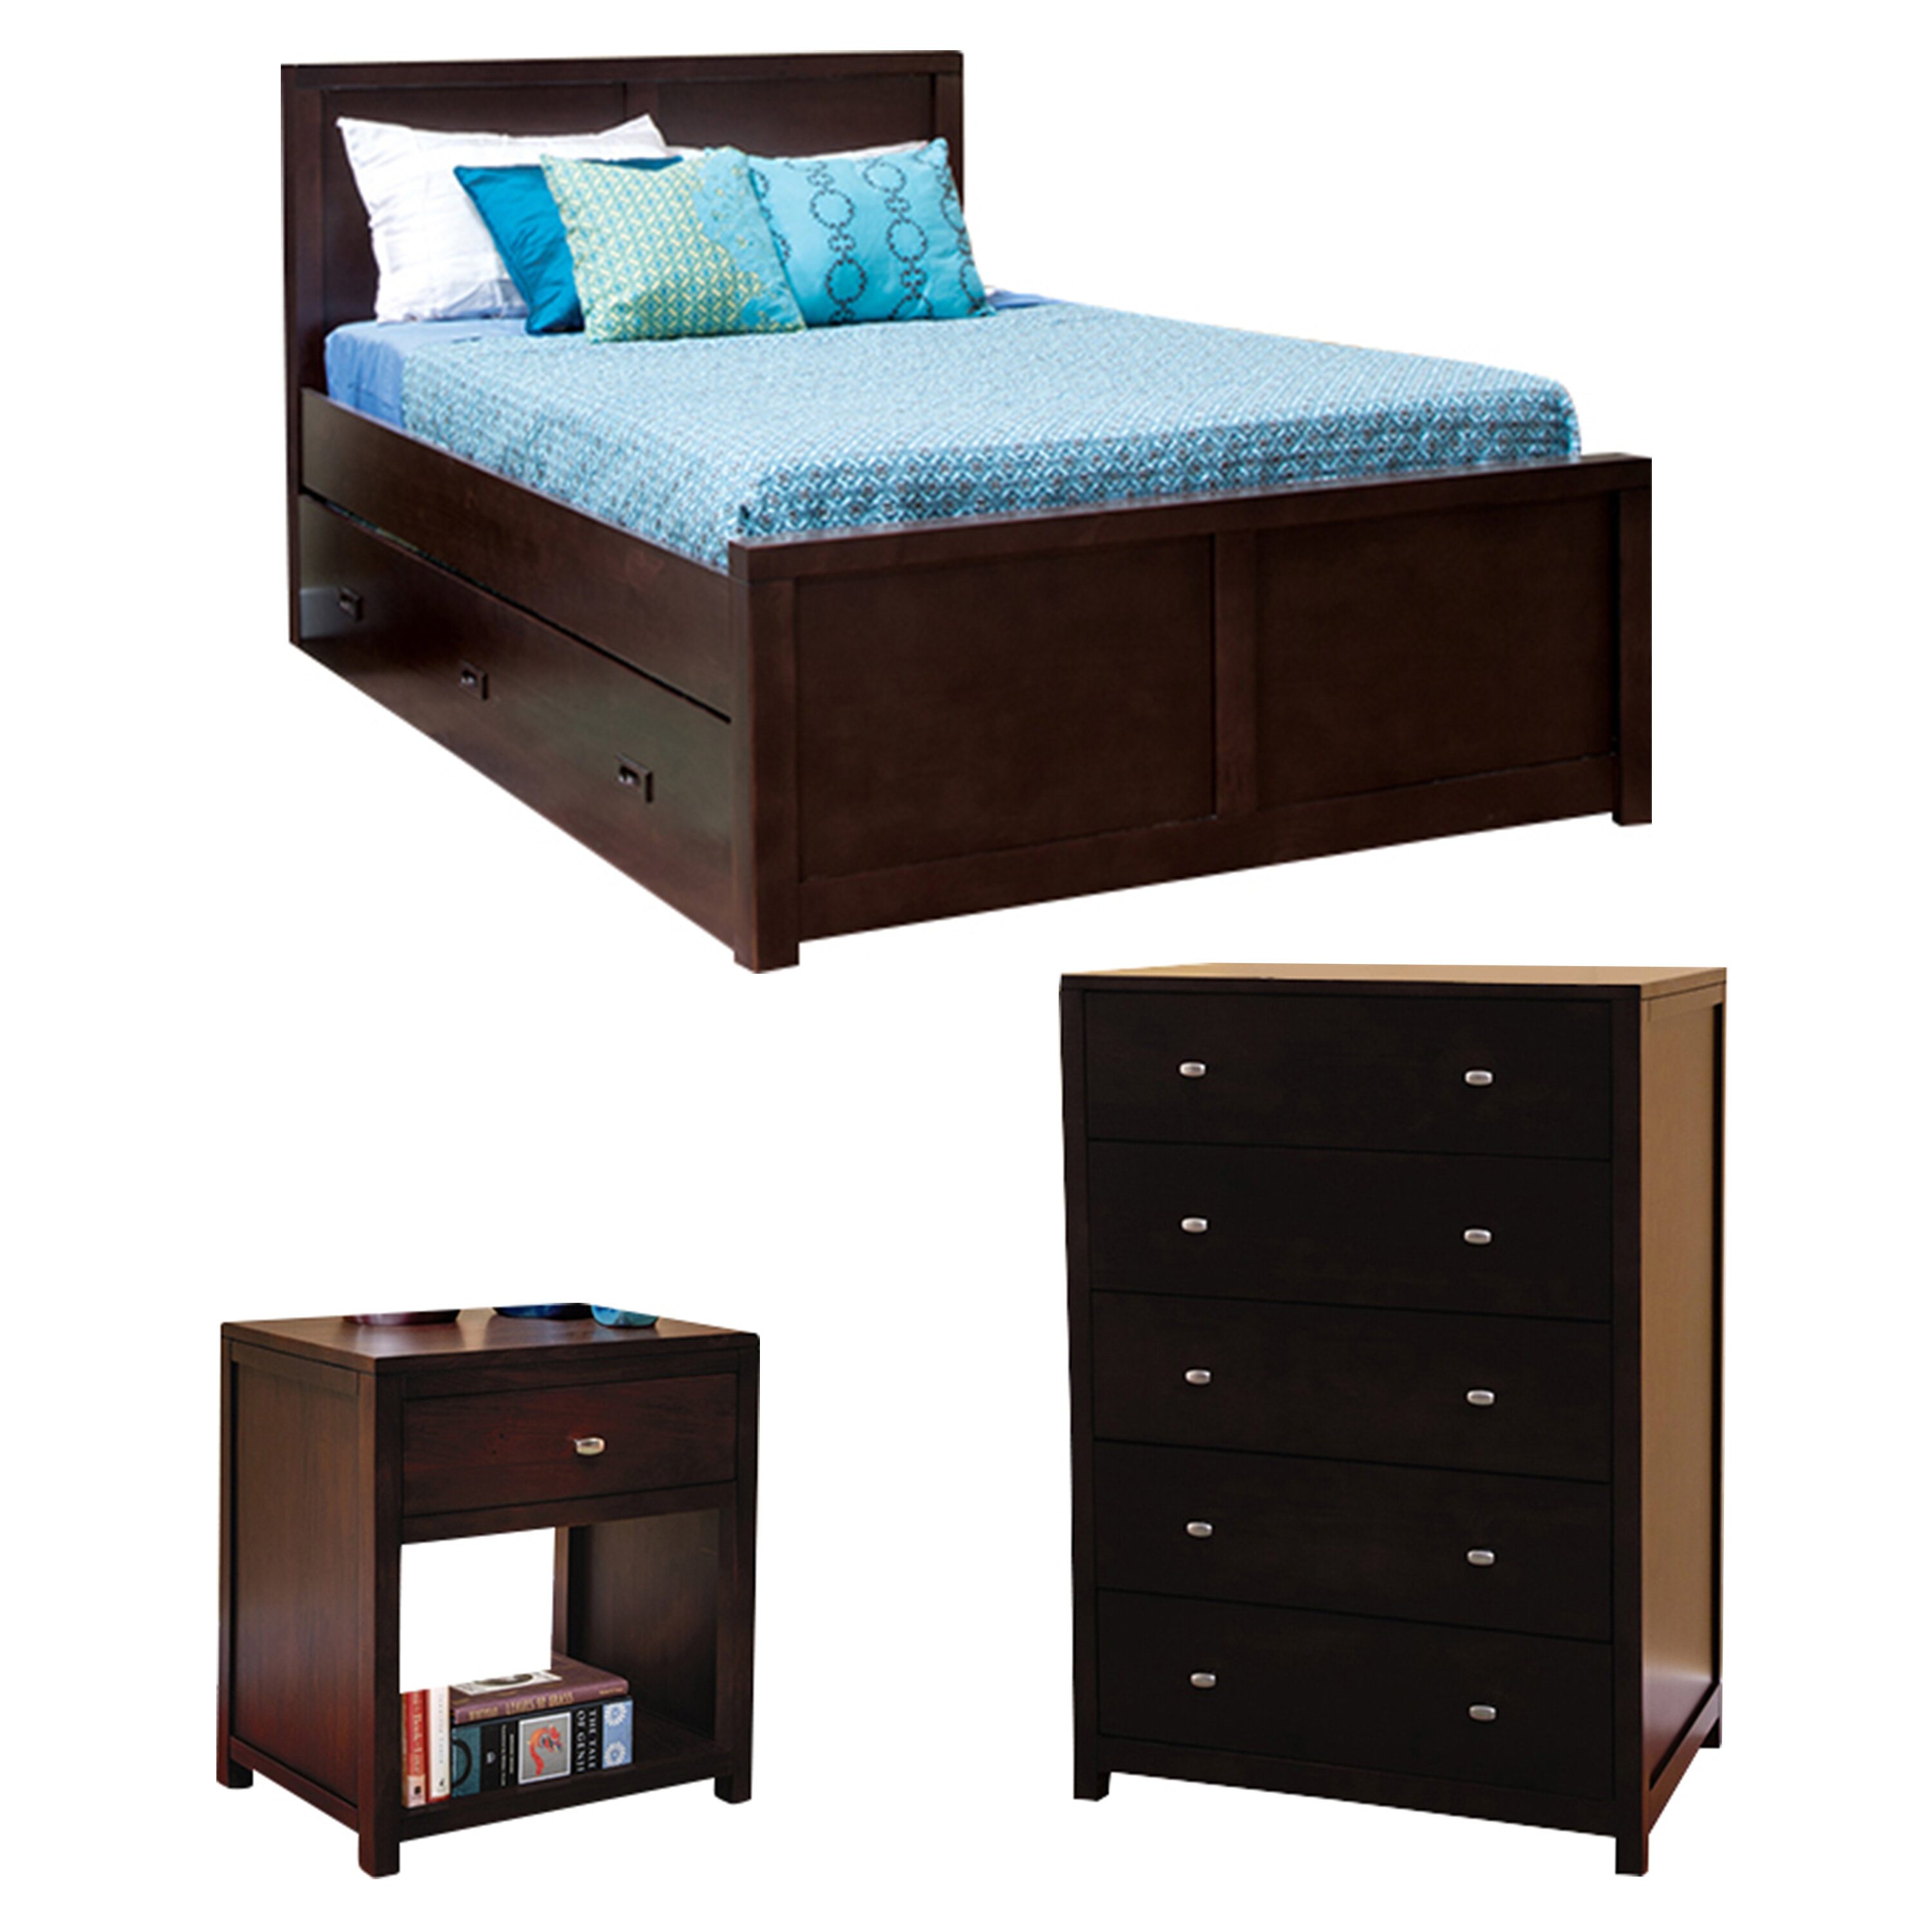 Epoch Design Peyton Full Platform Configurable Bedroom Set